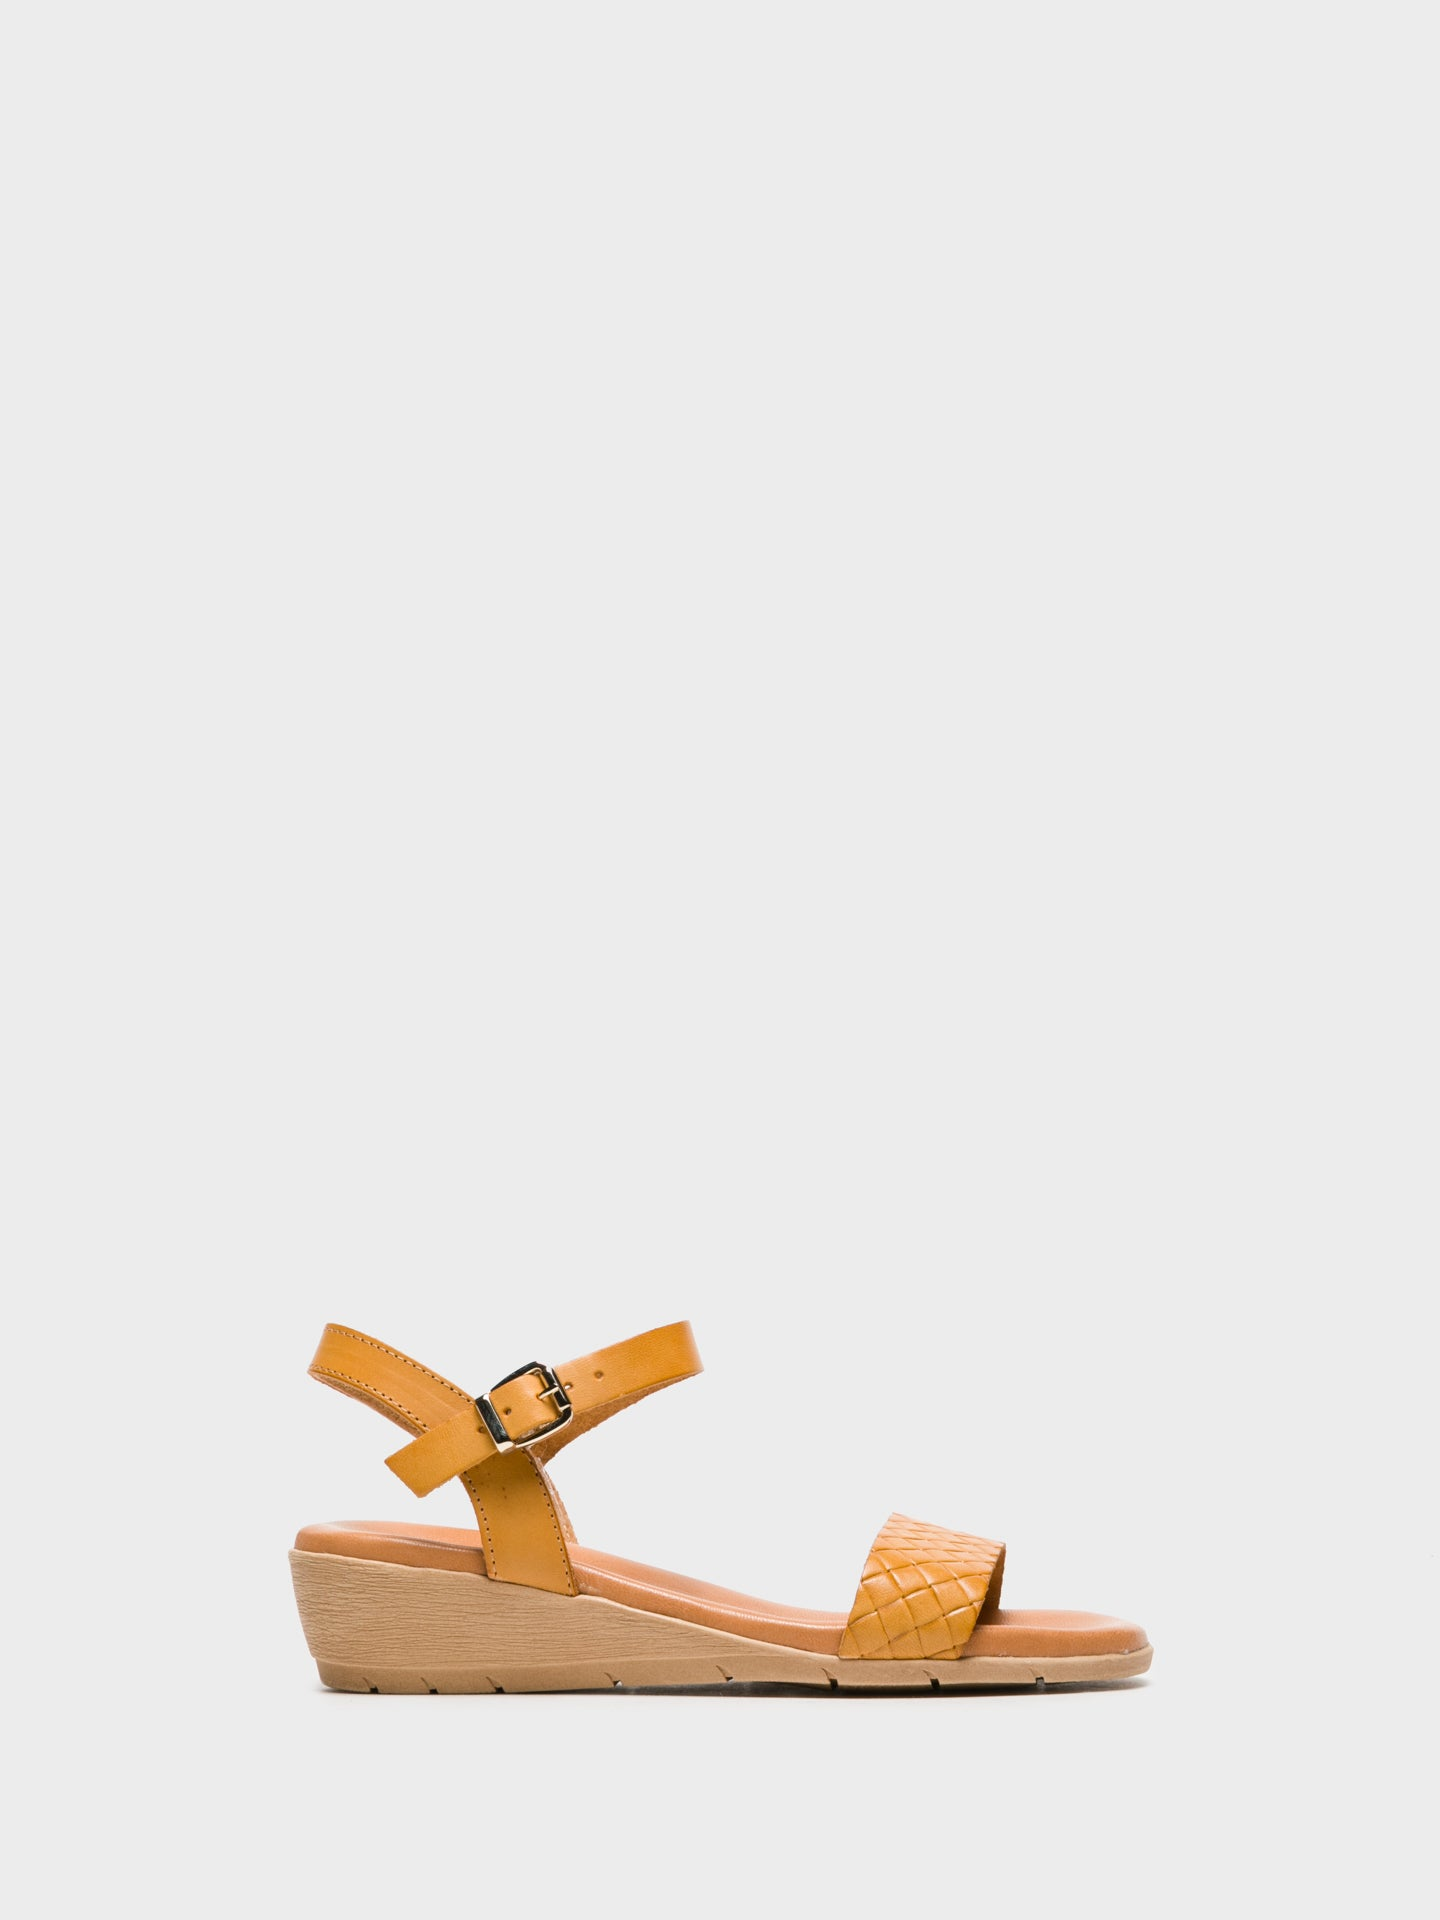 Sotoalto Yellow Sling-Back Sandals